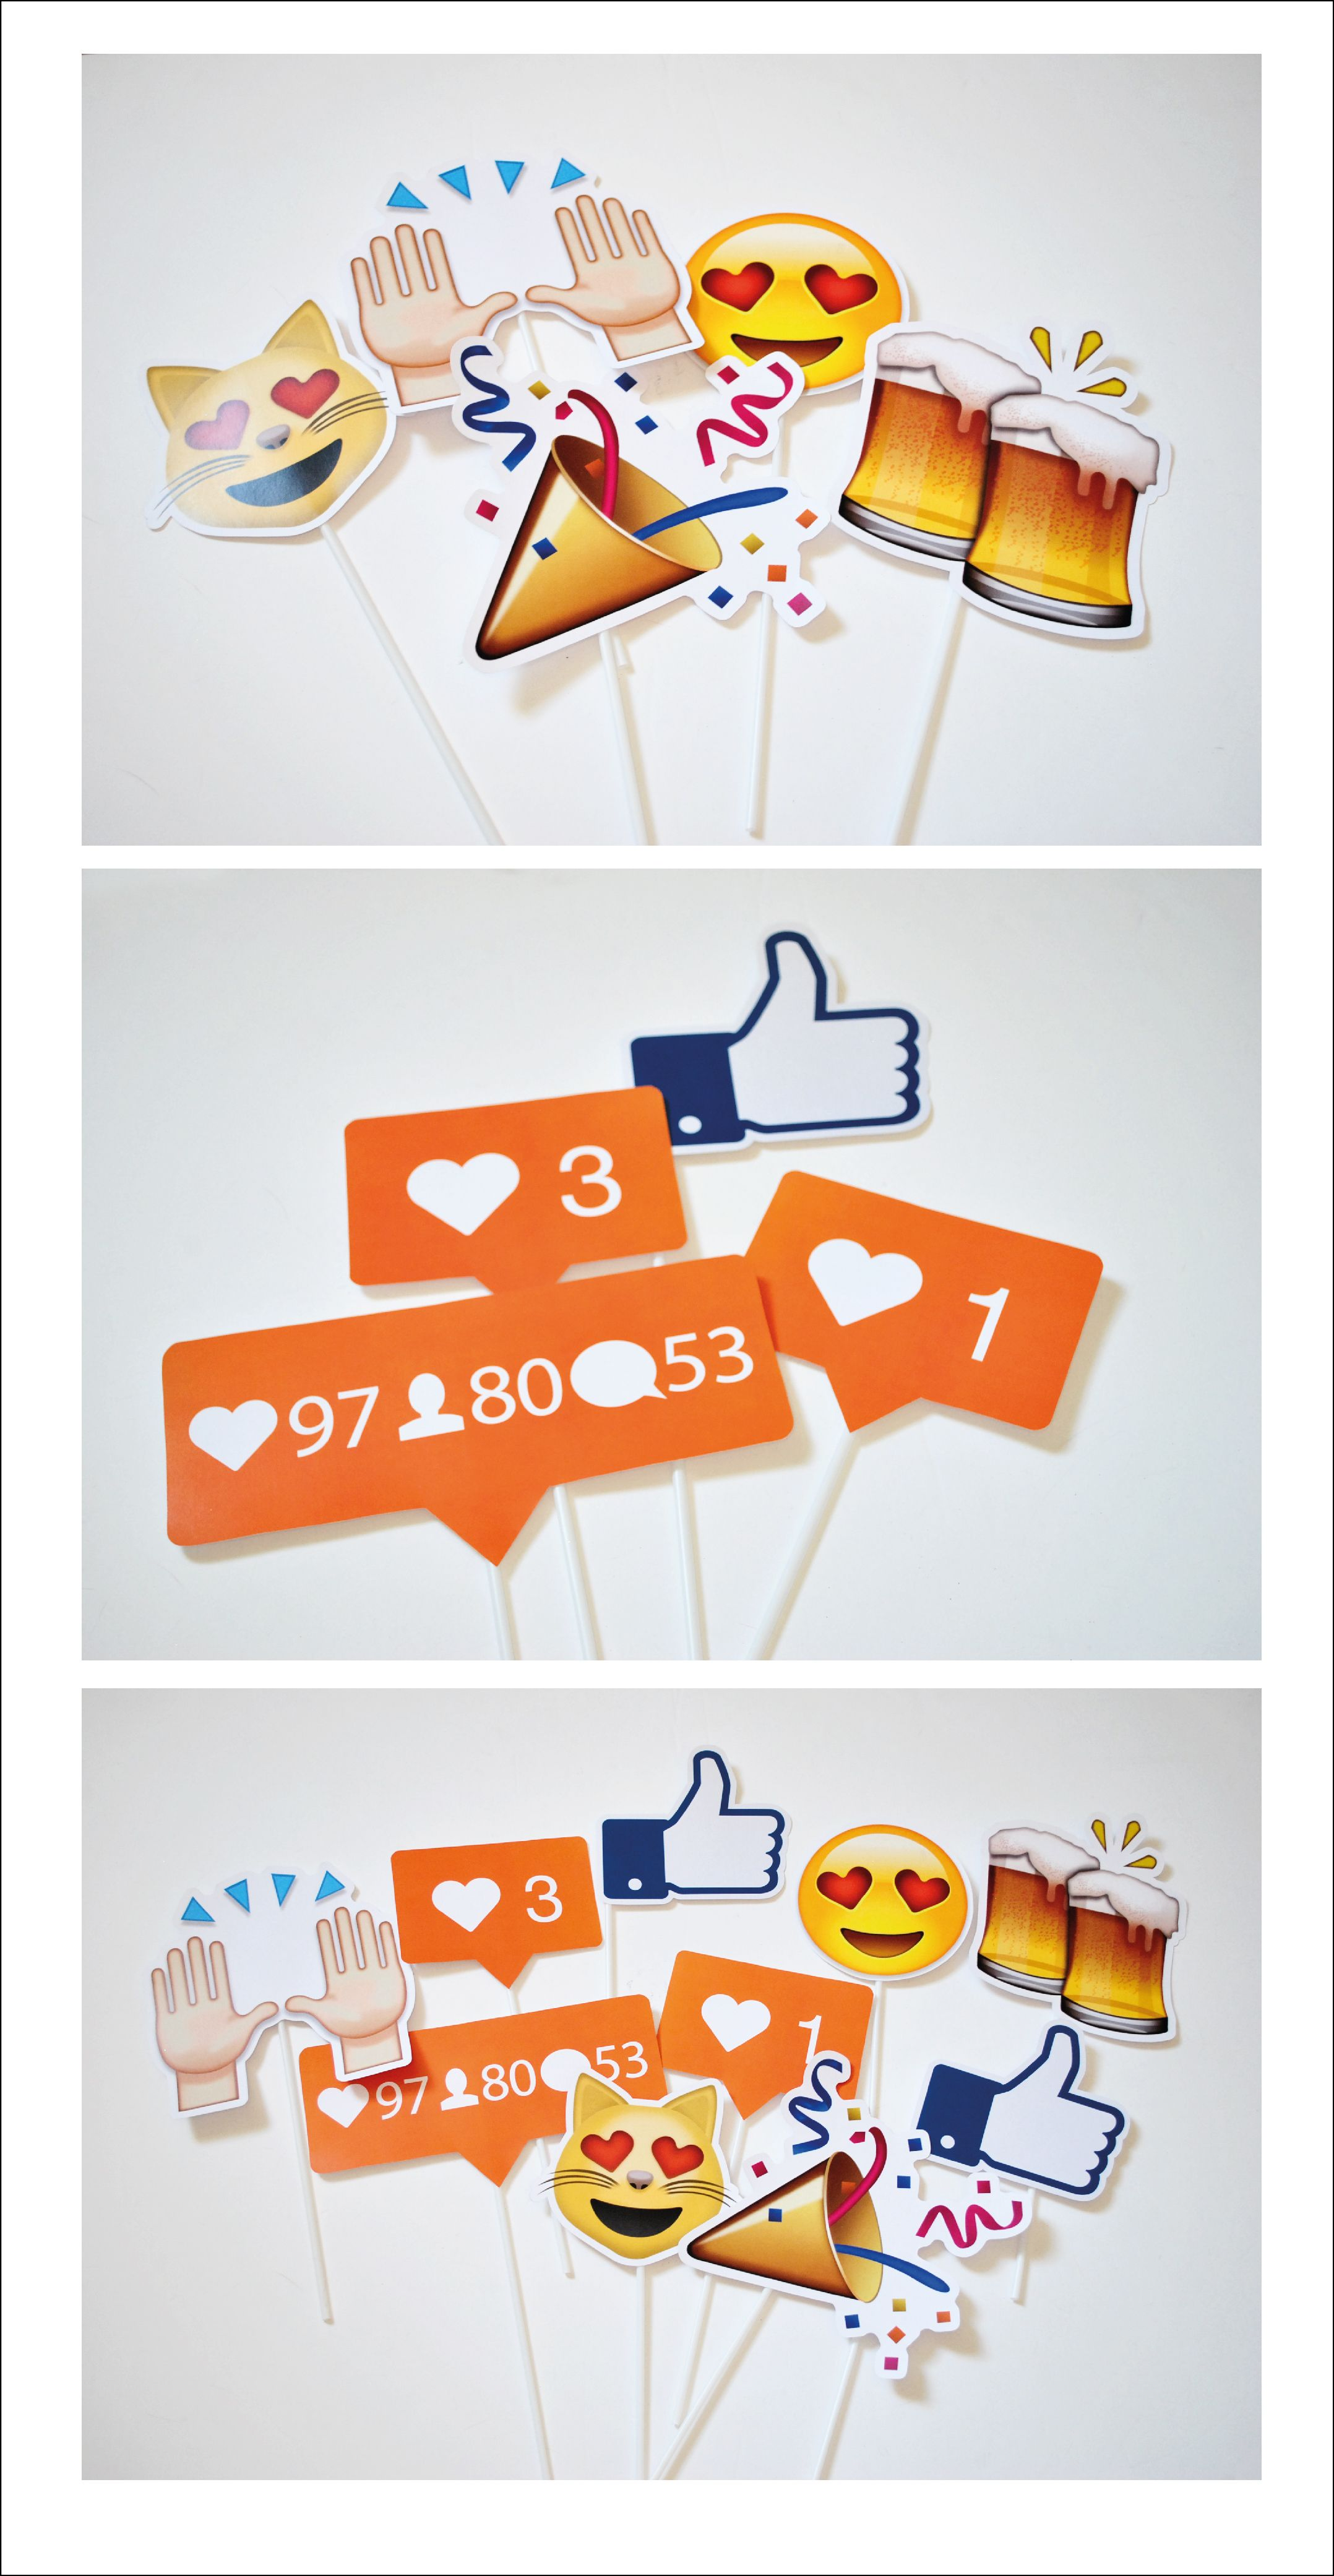 Photo props iconos sociales emoji instagram facebook for Emoticones para instagram